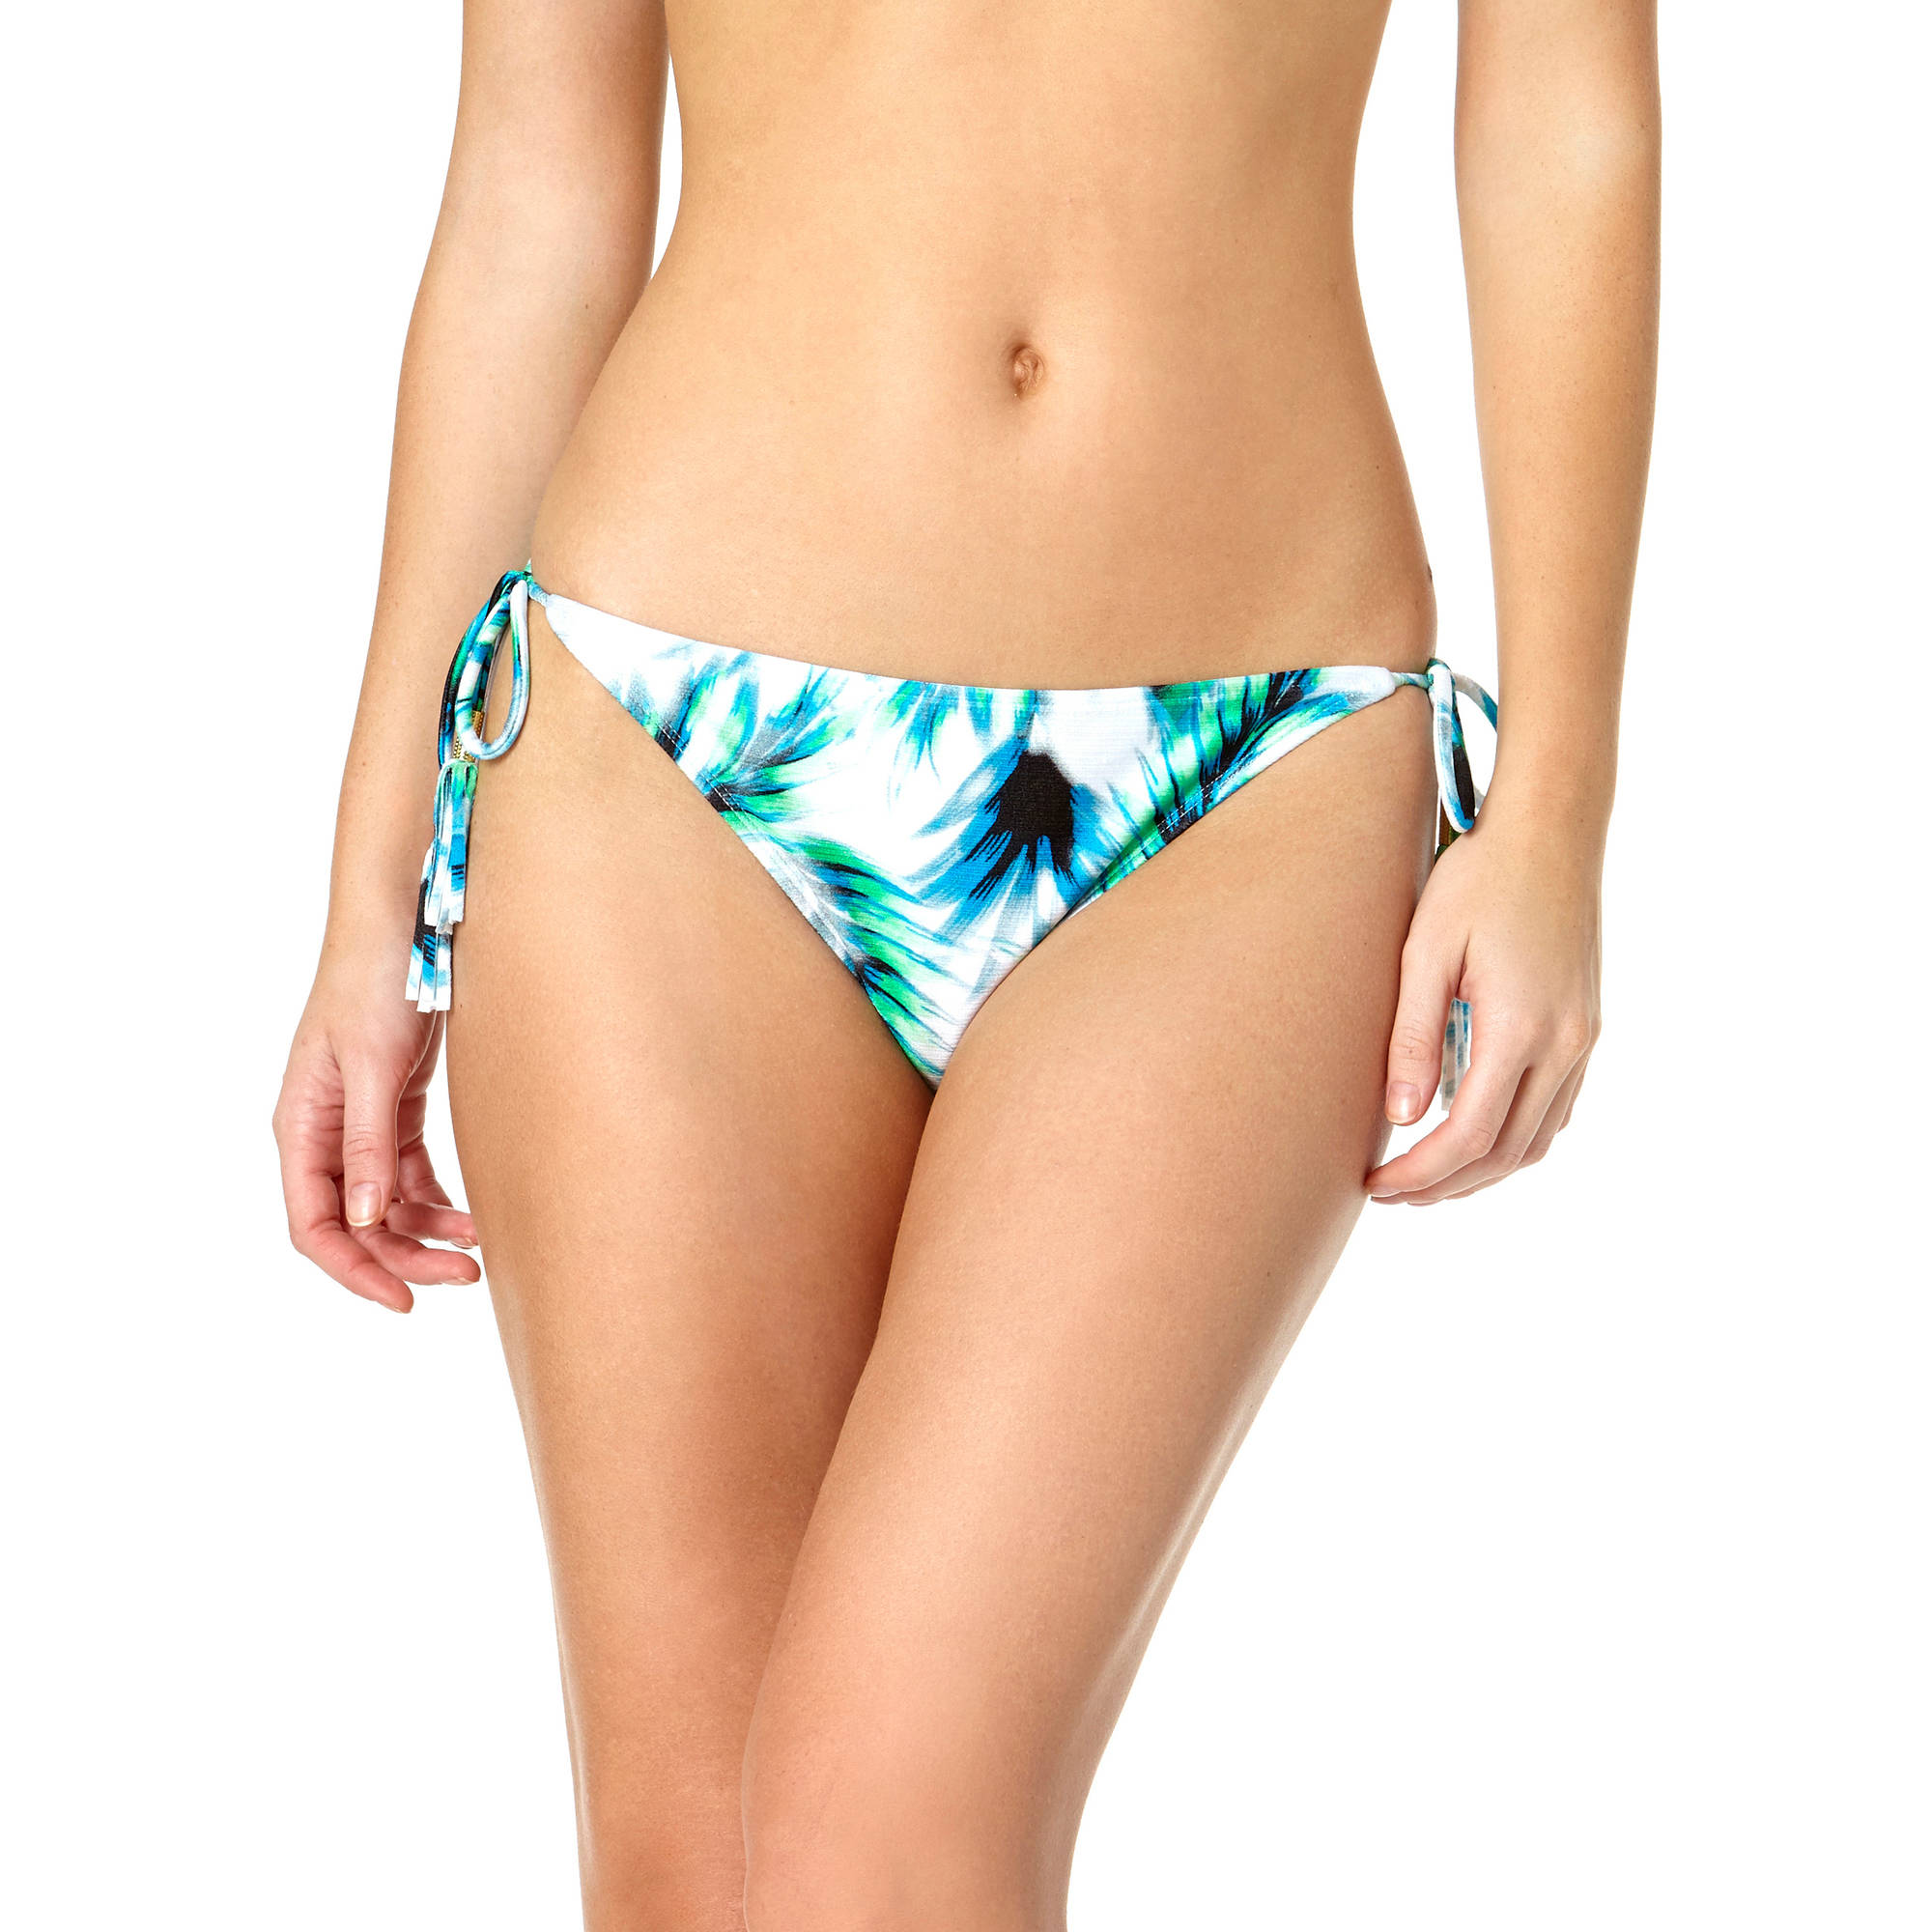 Tahiti Women's Tassel and Bead Trim Side Tie Bikini Swimsuit Bottom